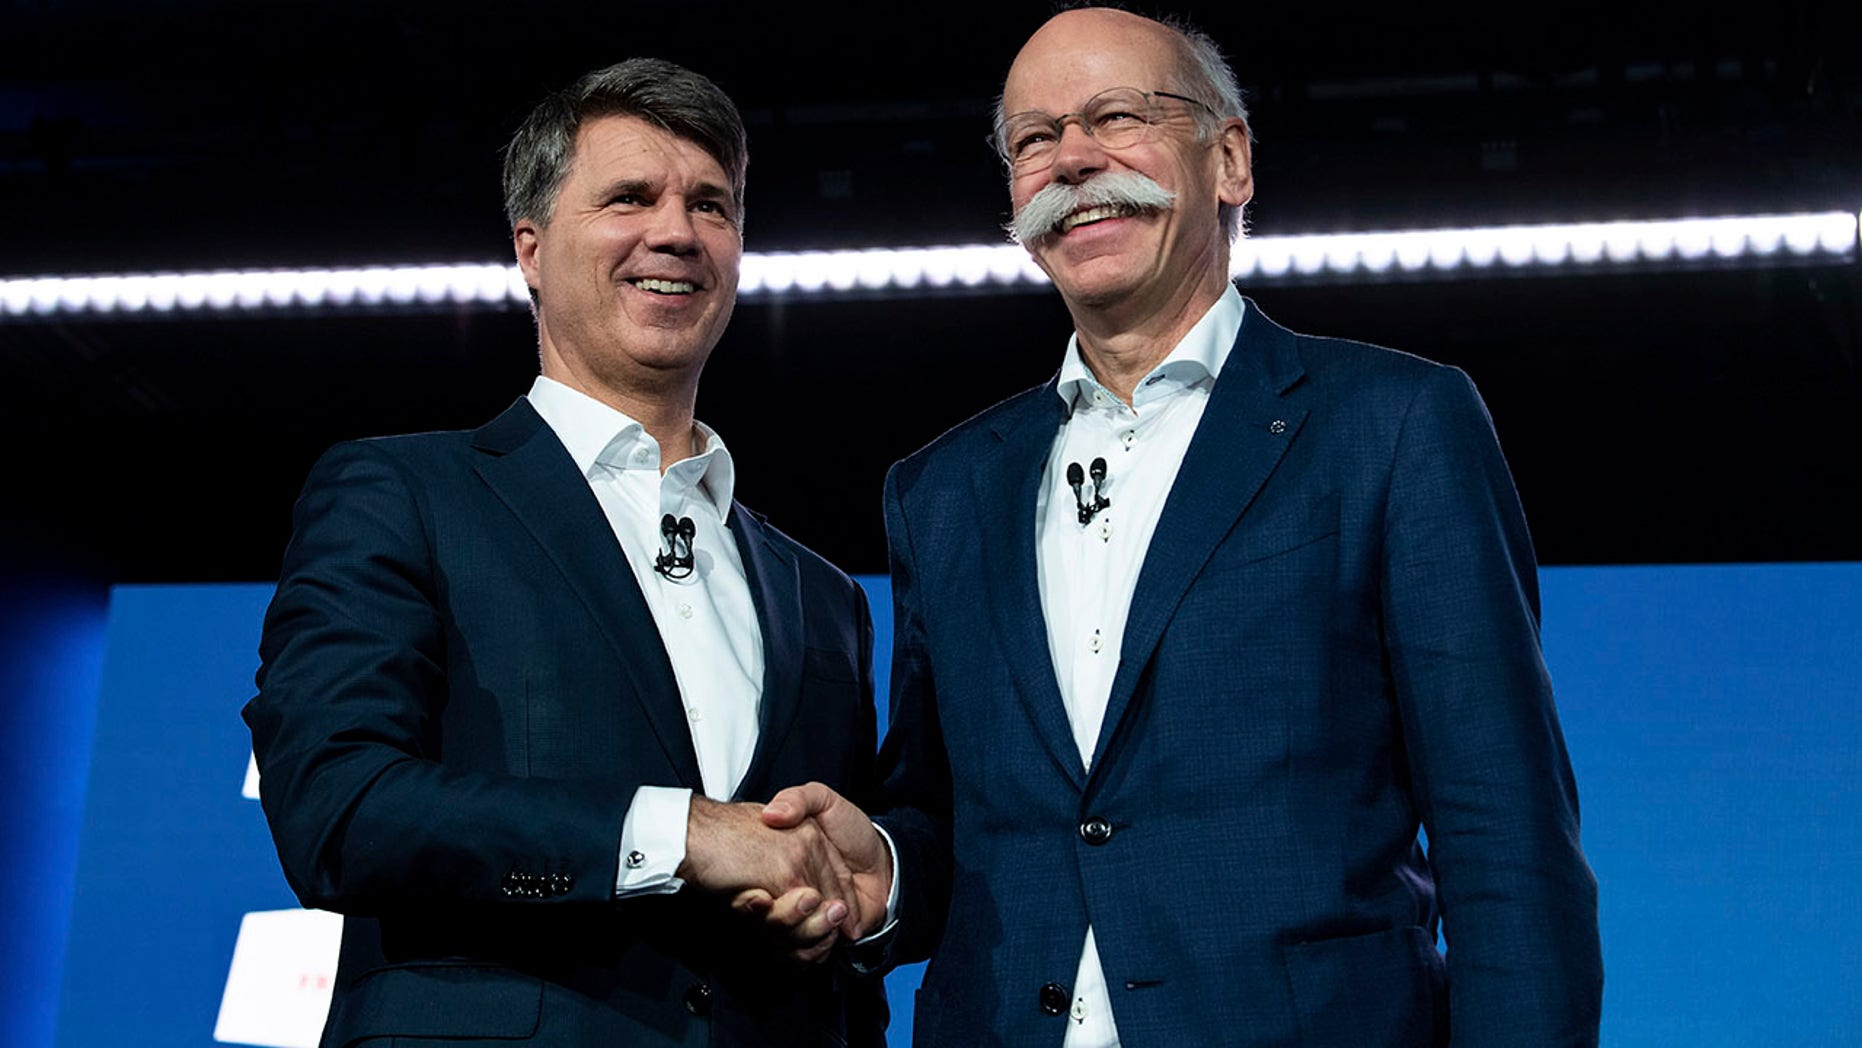 BMW CEO Harald Krueger, left, and Mercedes-Benz CEO Dieter Zetsche of Daimler, right, announced the agreement in Berlin.